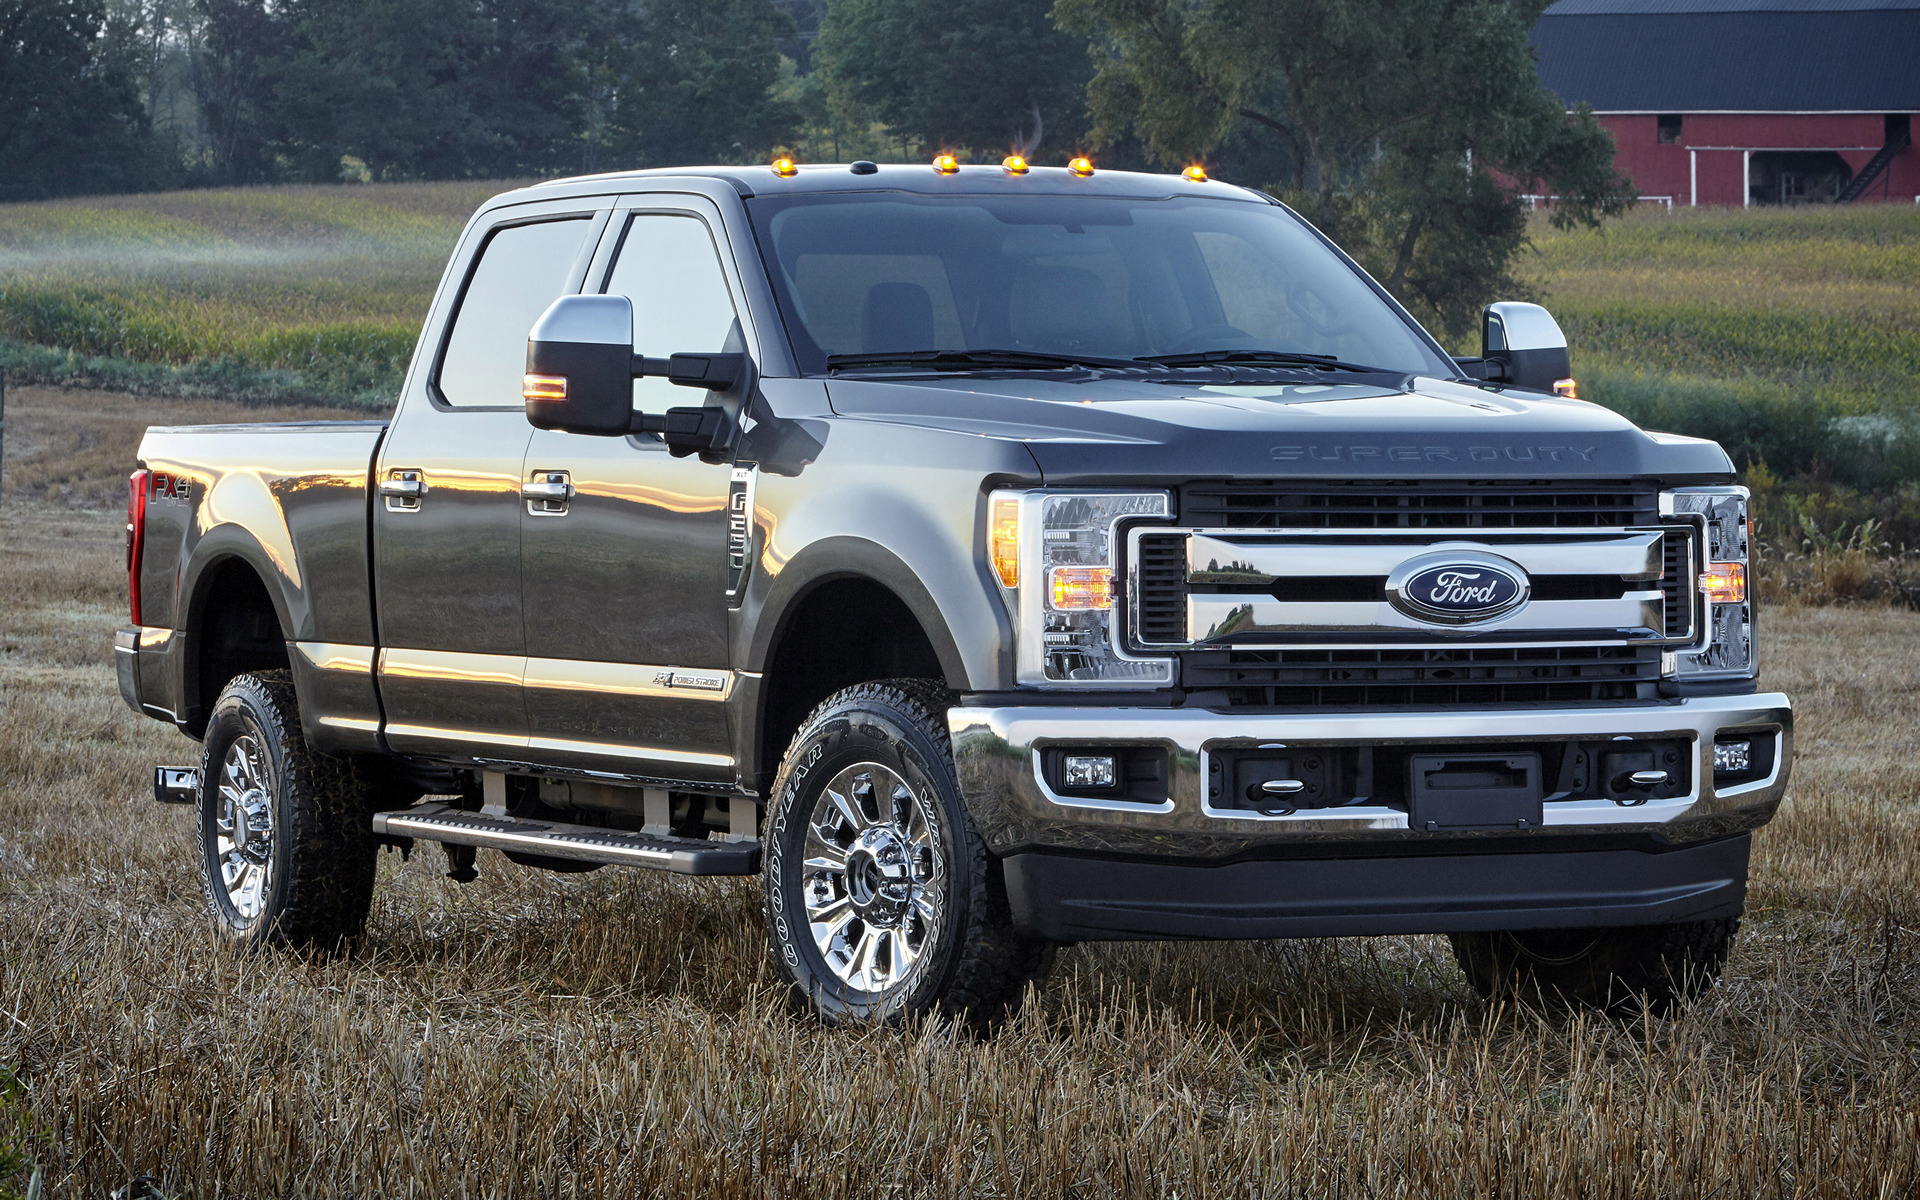 2017 Ford F-250 XLT FX4 Crew Cab - Wallpapers and HD Images | Car Pixel